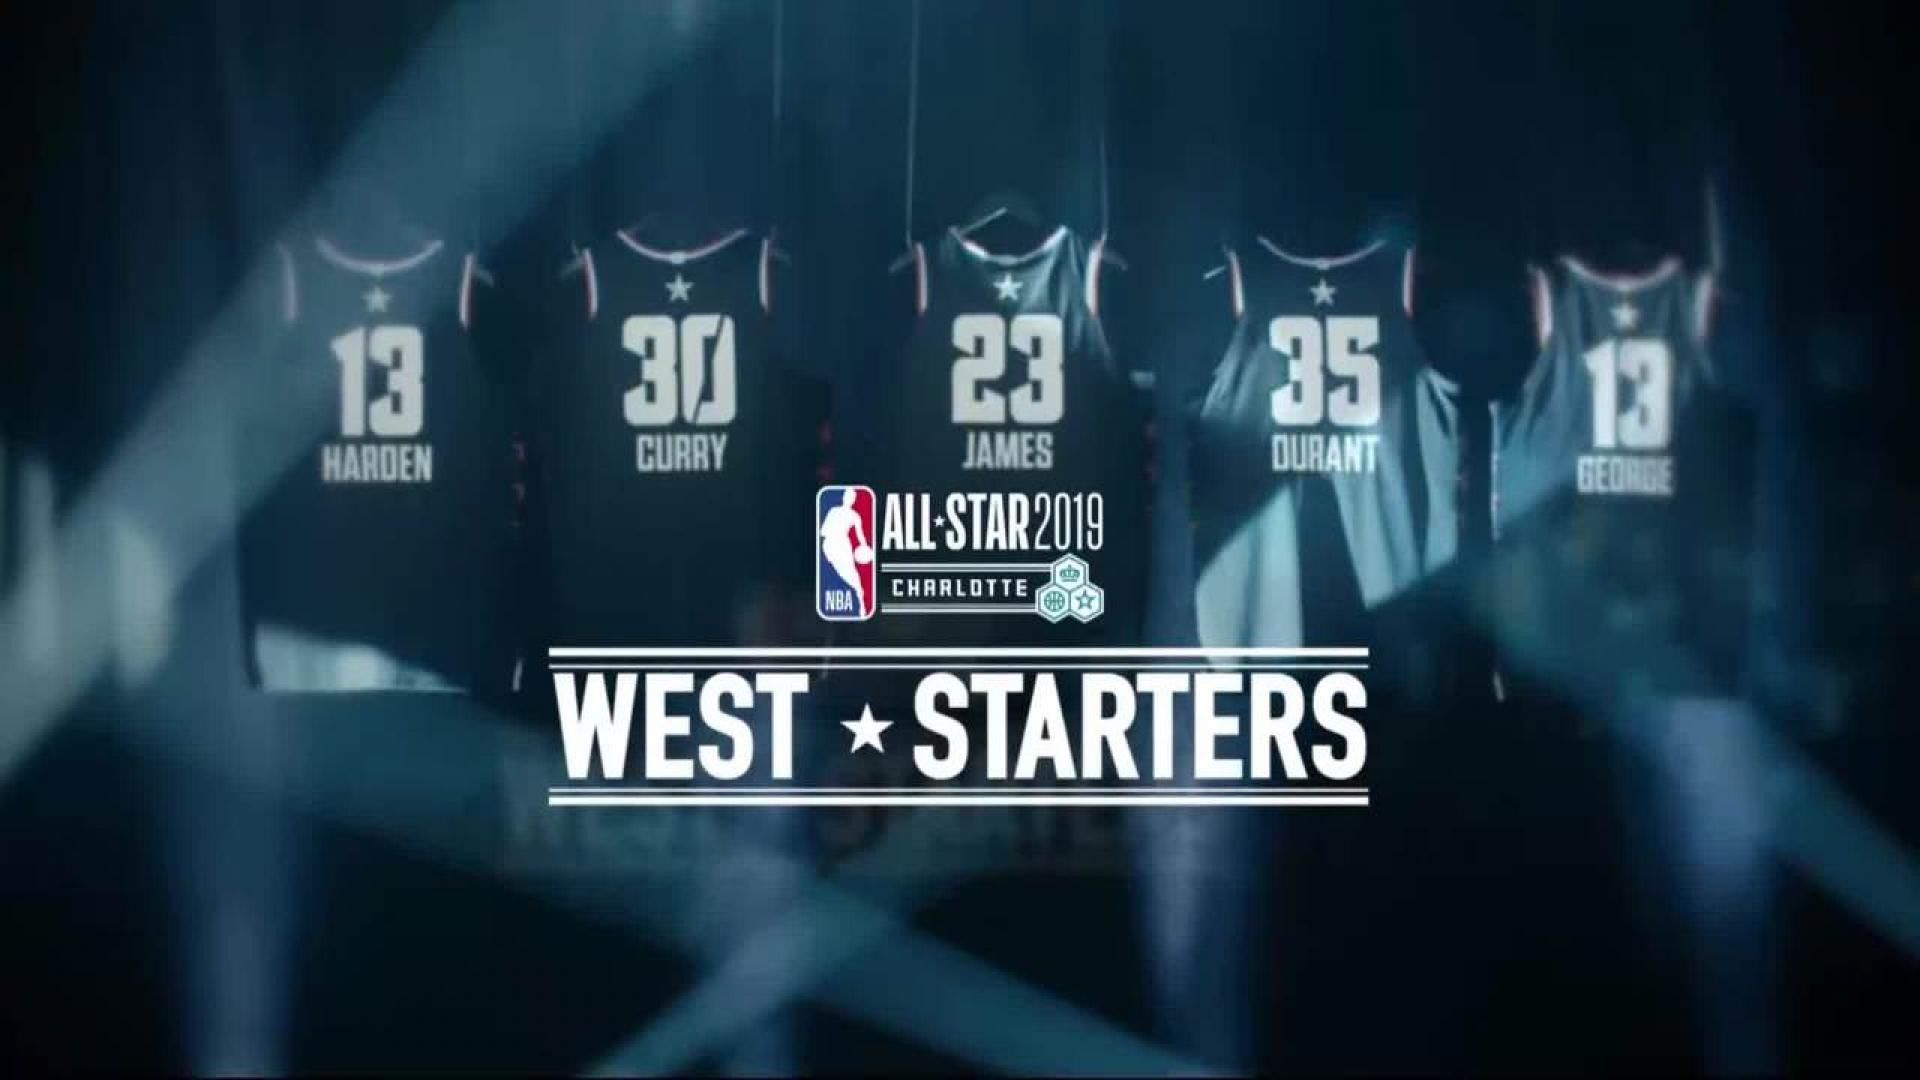 Nba All Star 2019 Starters Captains Revealed Nba Com